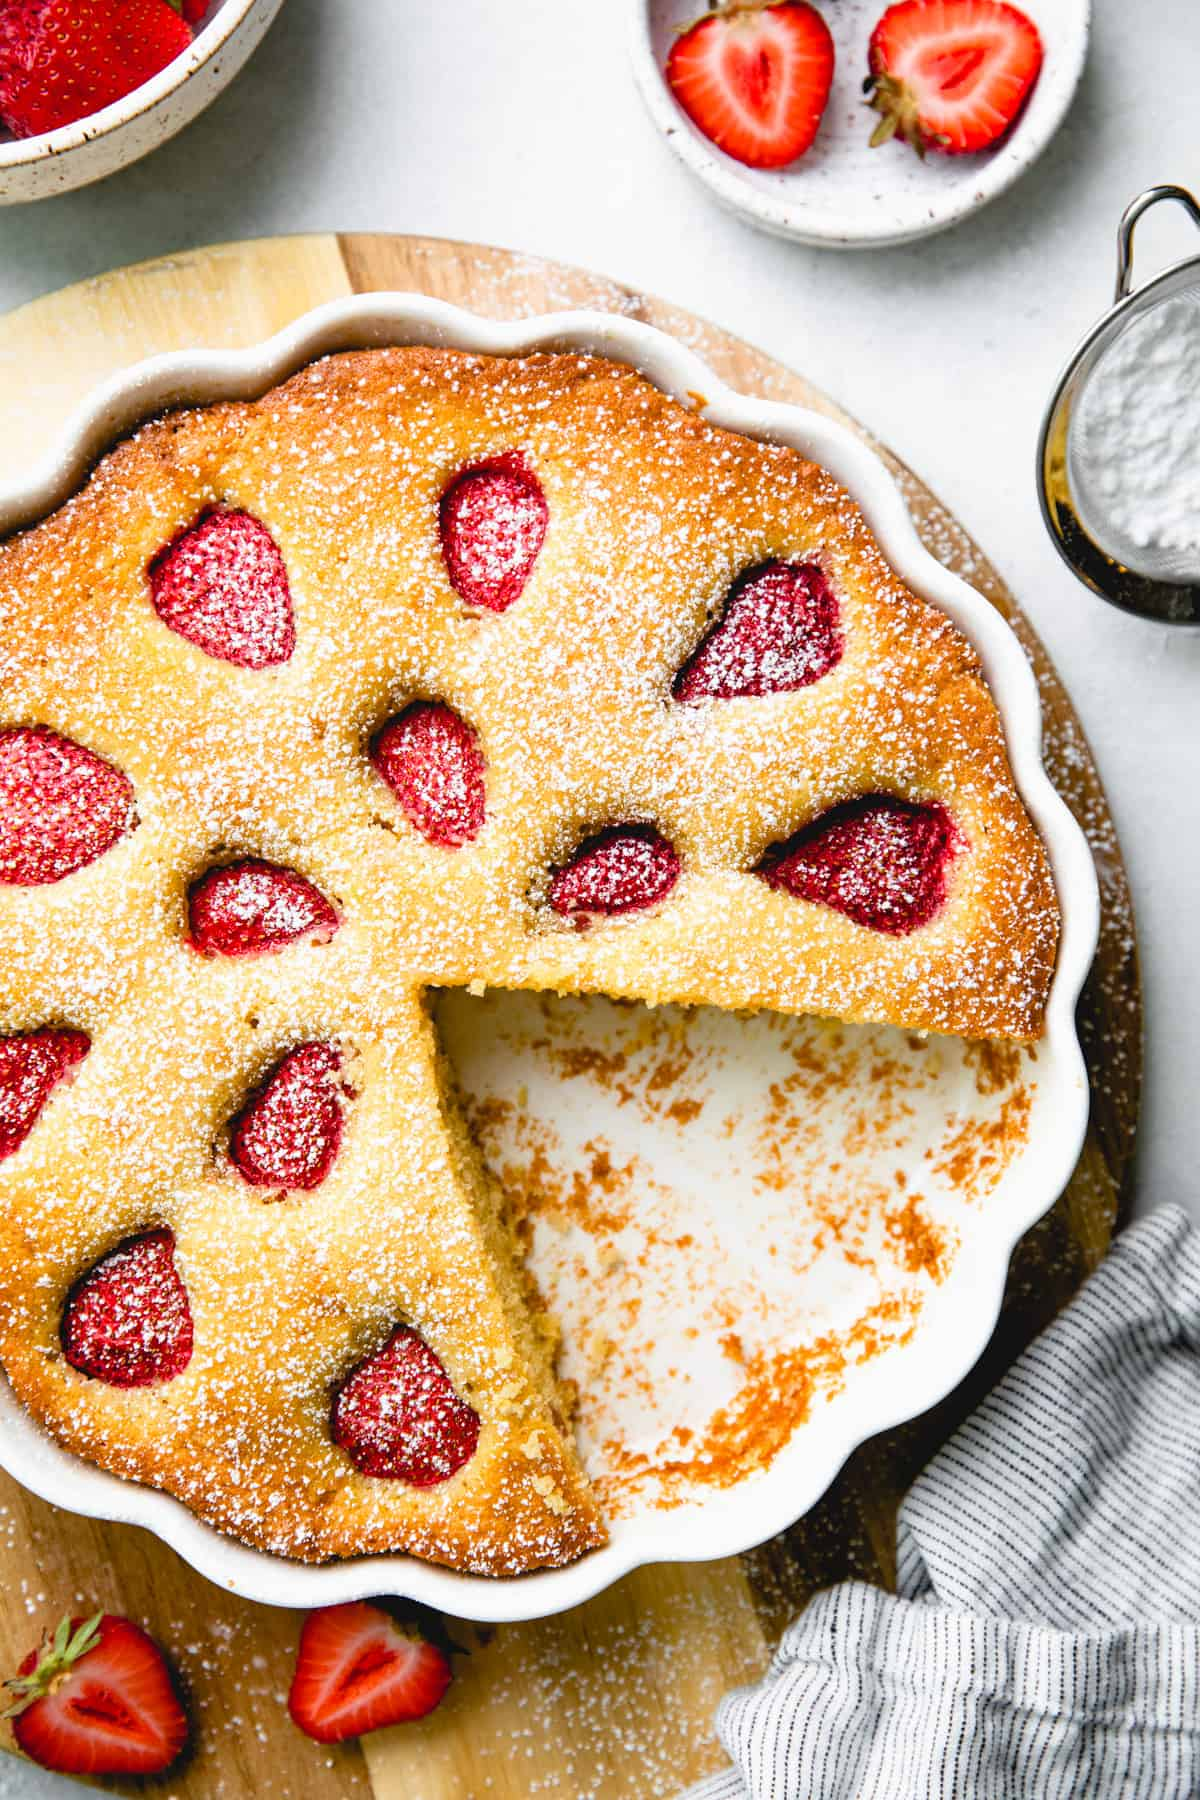 A vanilla coffee cake, topped with strawberries, in a white round baking pan on a wooden board.